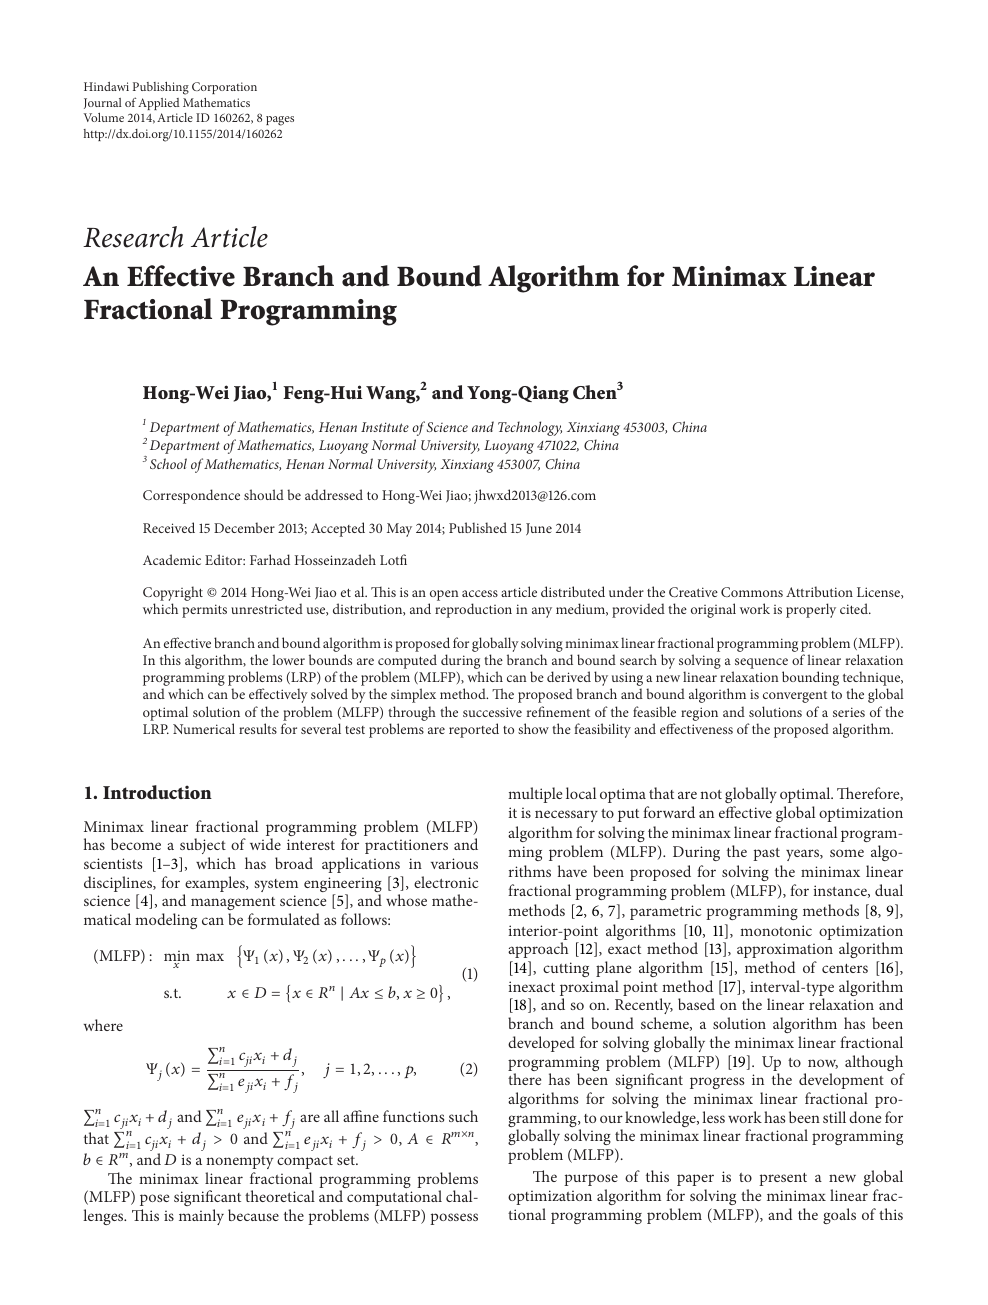 An Effective Branch and Bound Algorithm for Minimax Linear